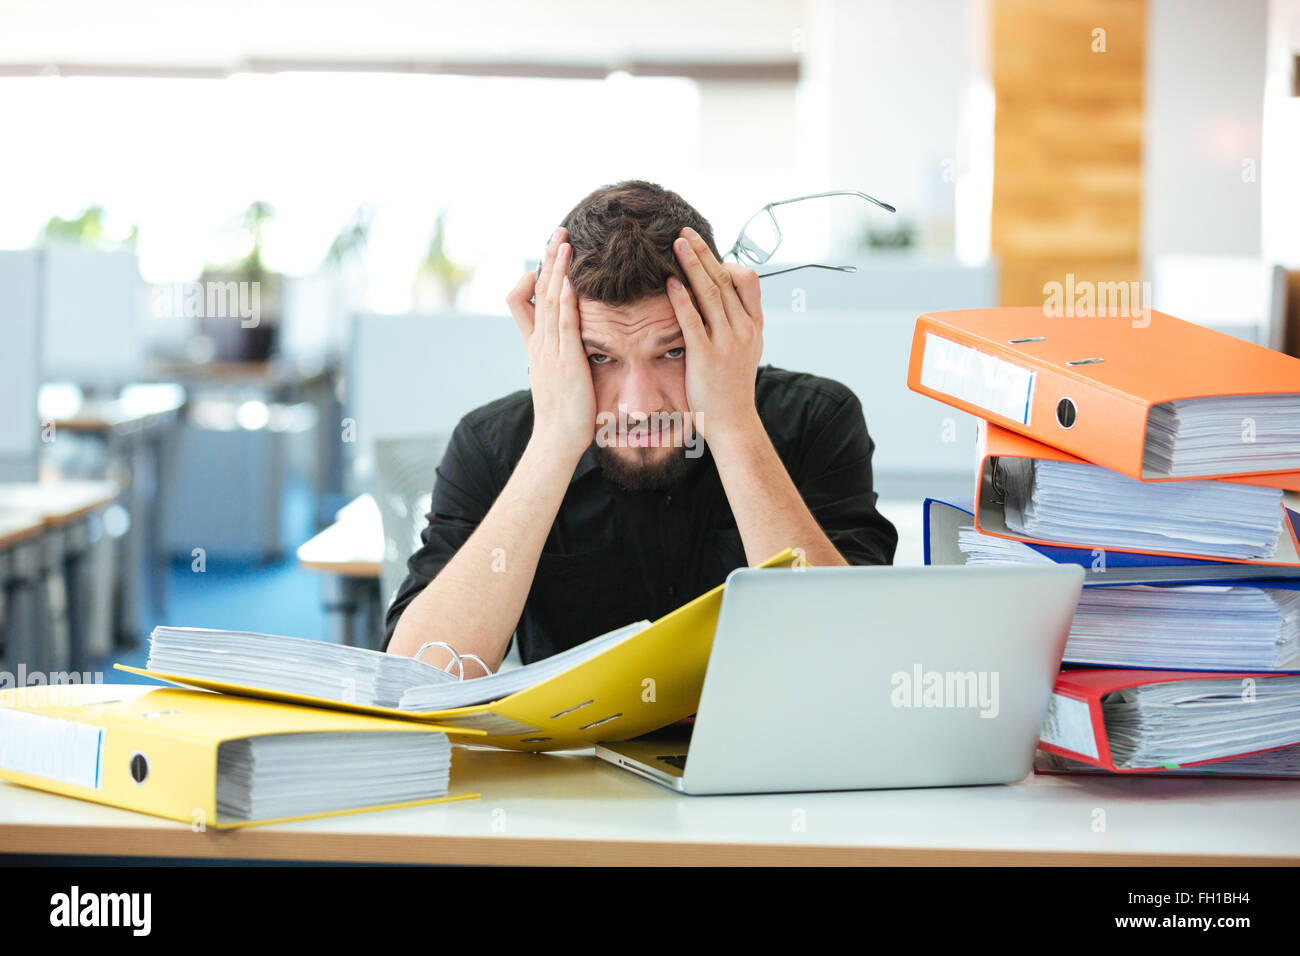 Tired businessman working with papers in office - Stock Image